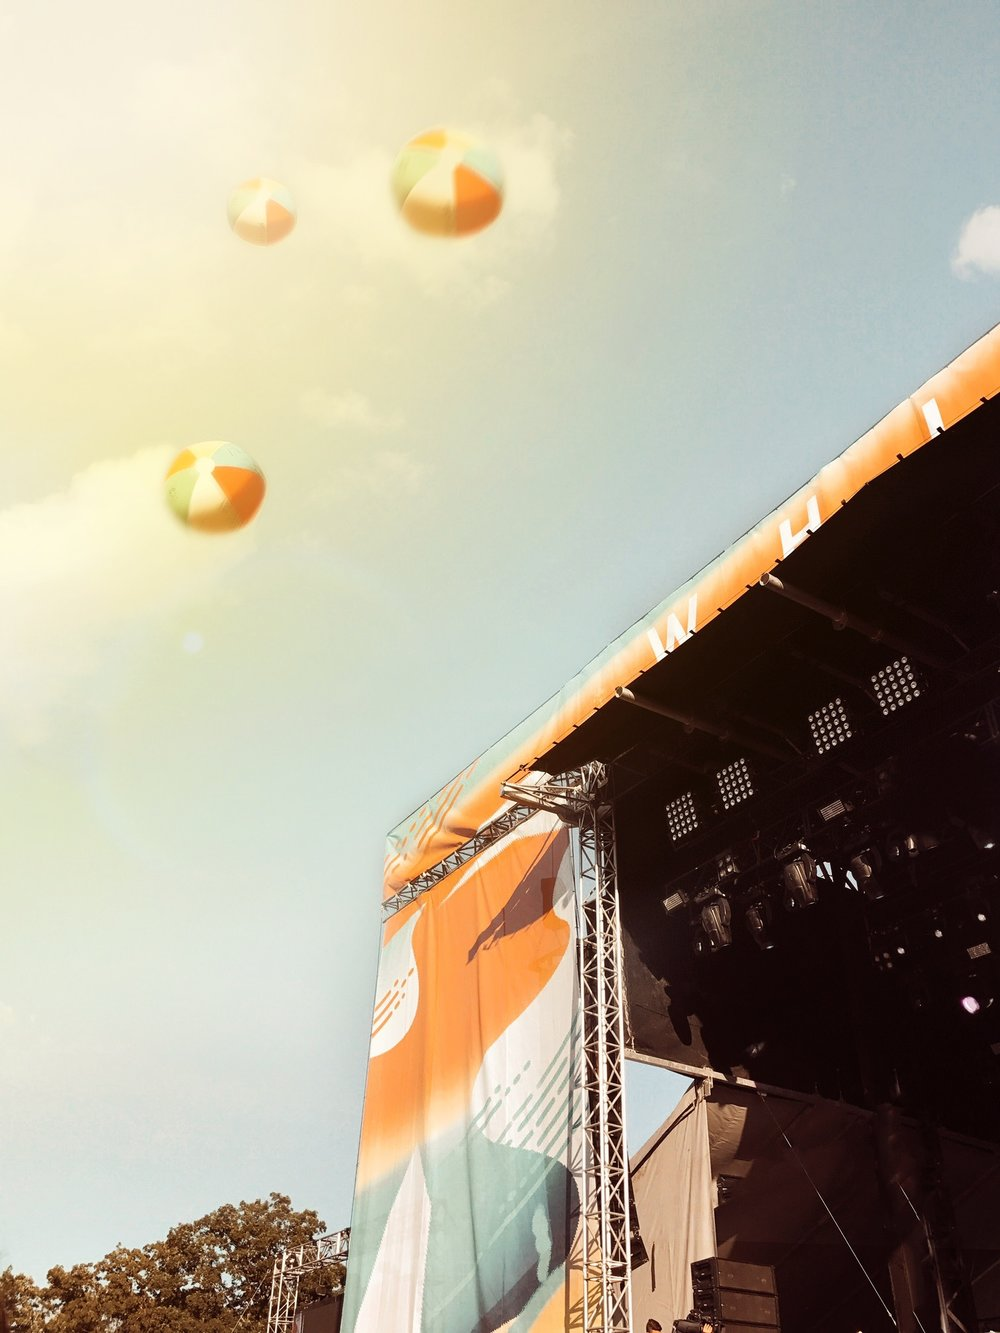 Beach Balls in the Sky